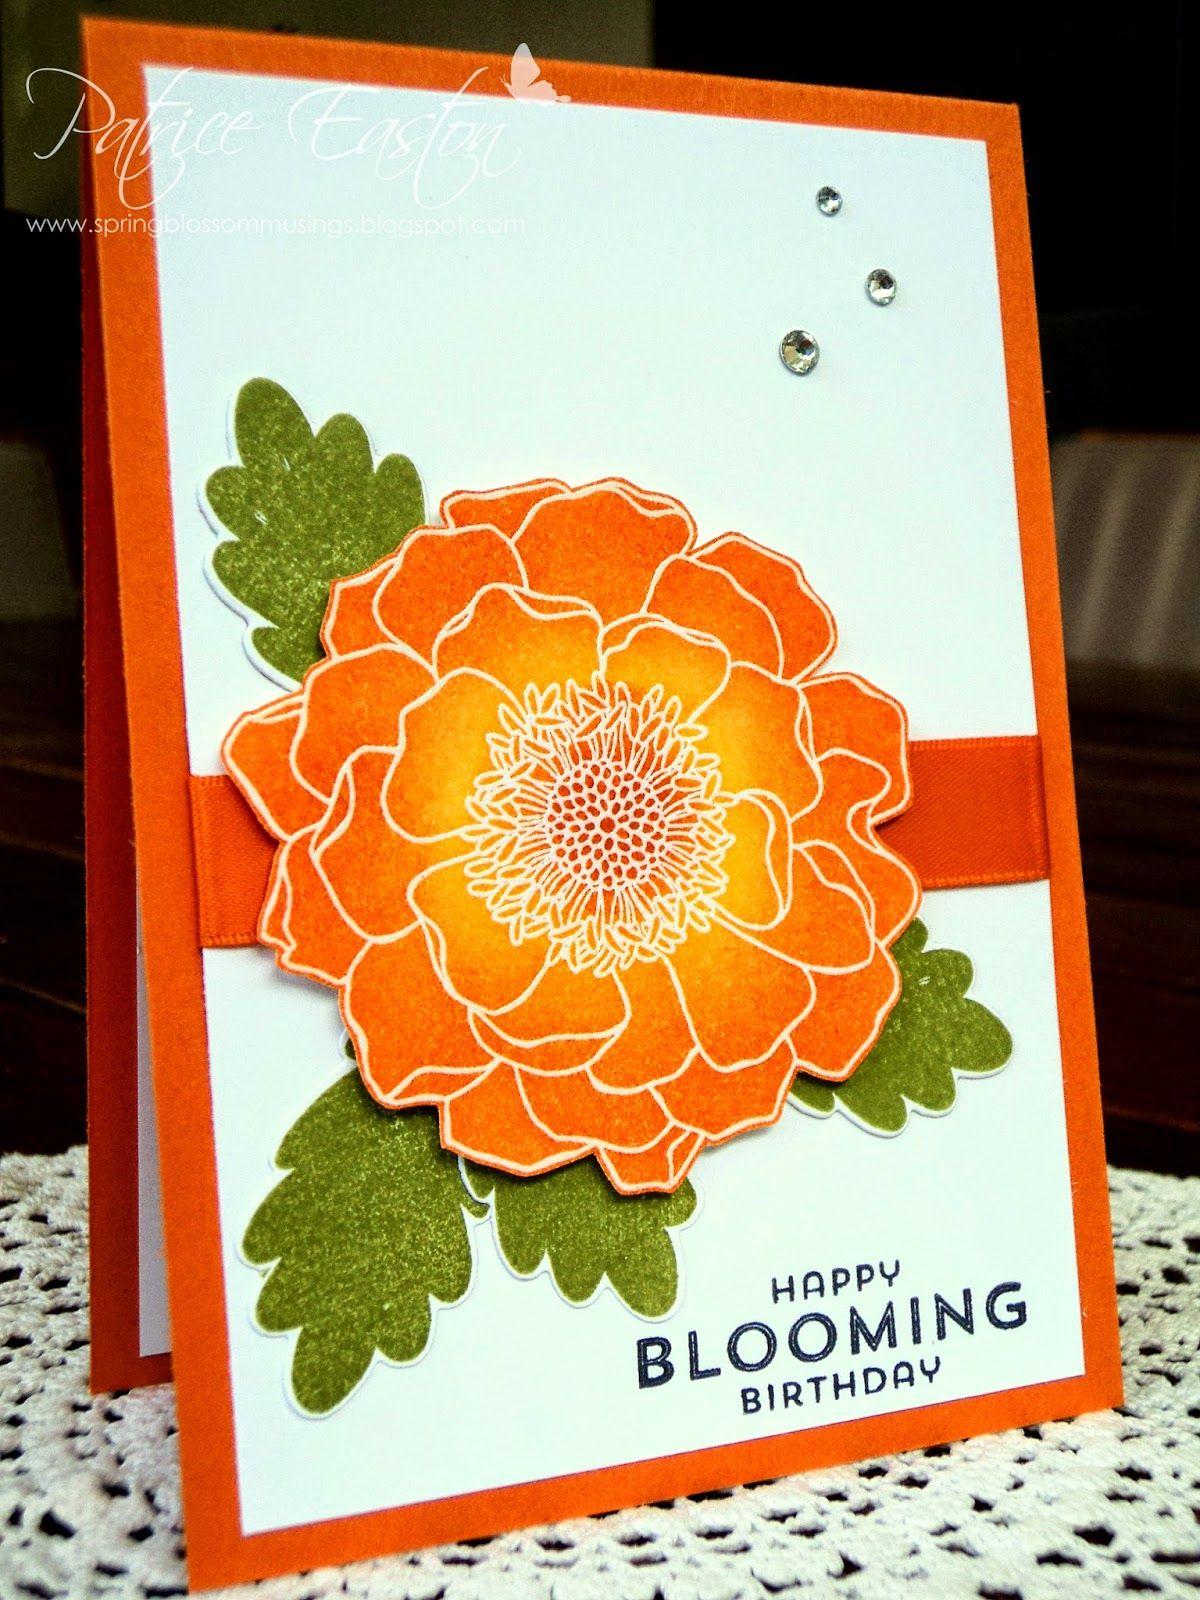 Stampin' Up! ... handmade card ... Blended Bloom ... gorgeous sponged color over embossed image ...